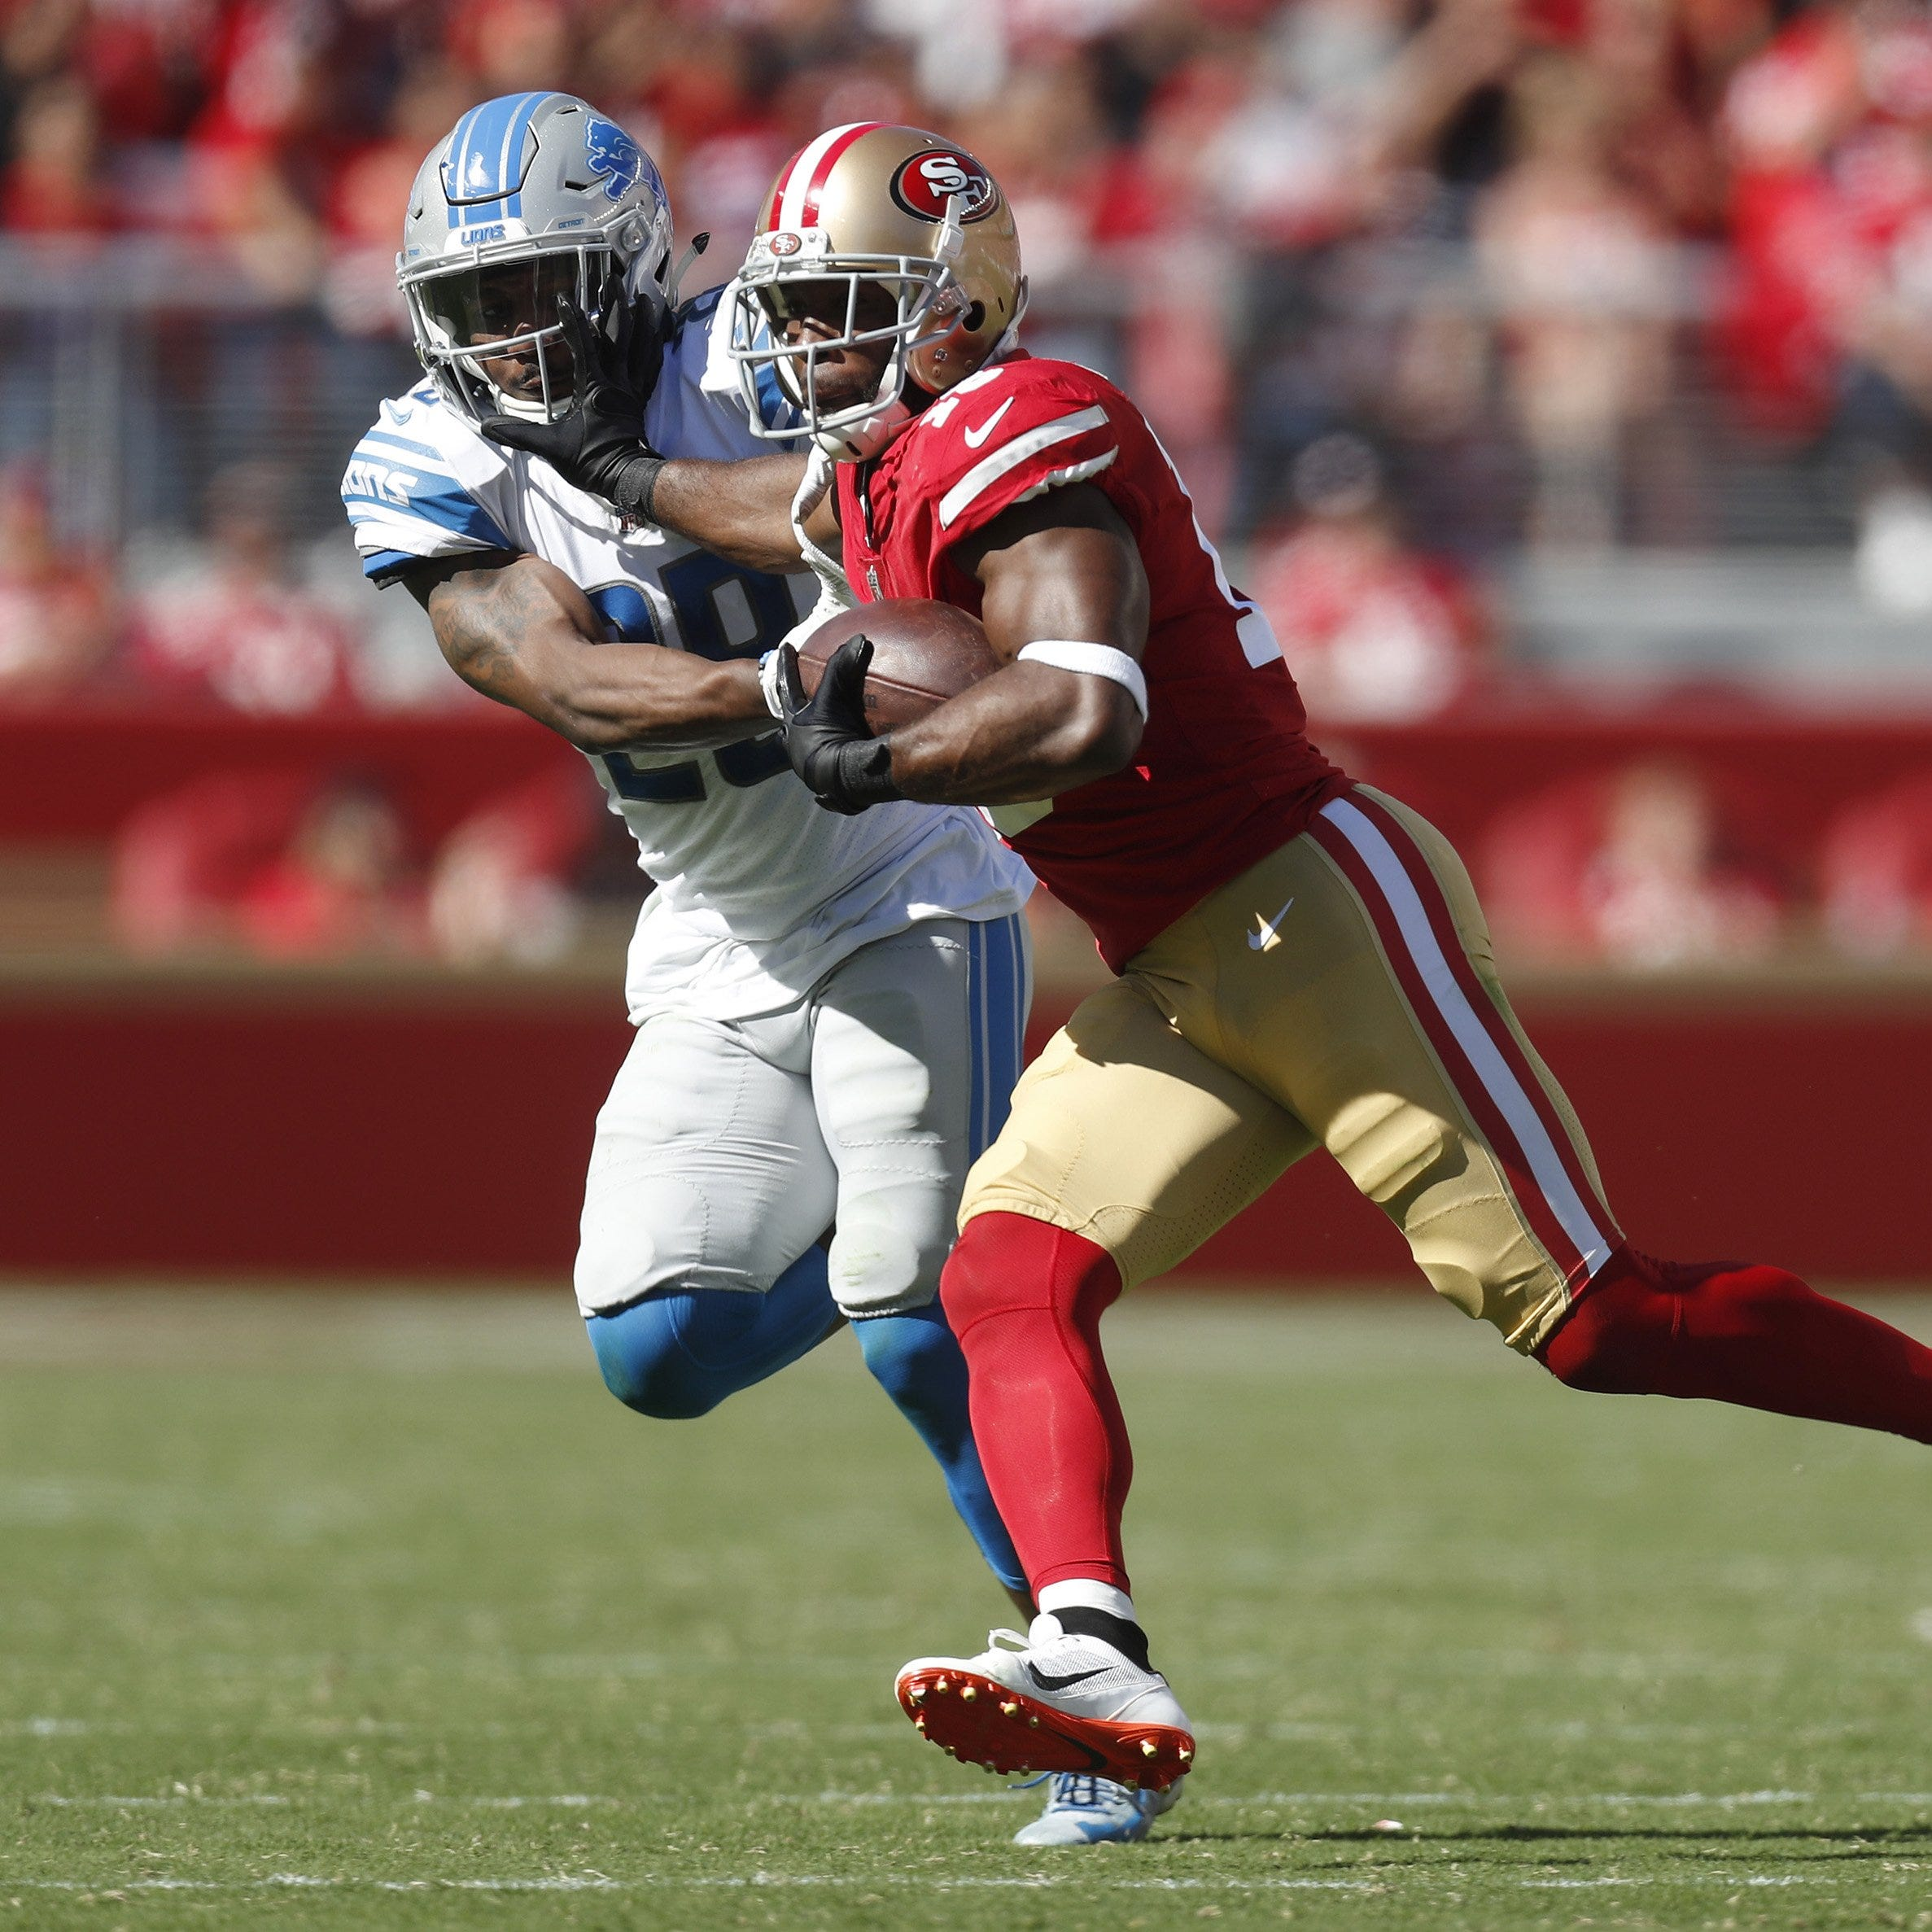 NFL: Holding penalty on Detroit Lions' Quandre Diggs was right call